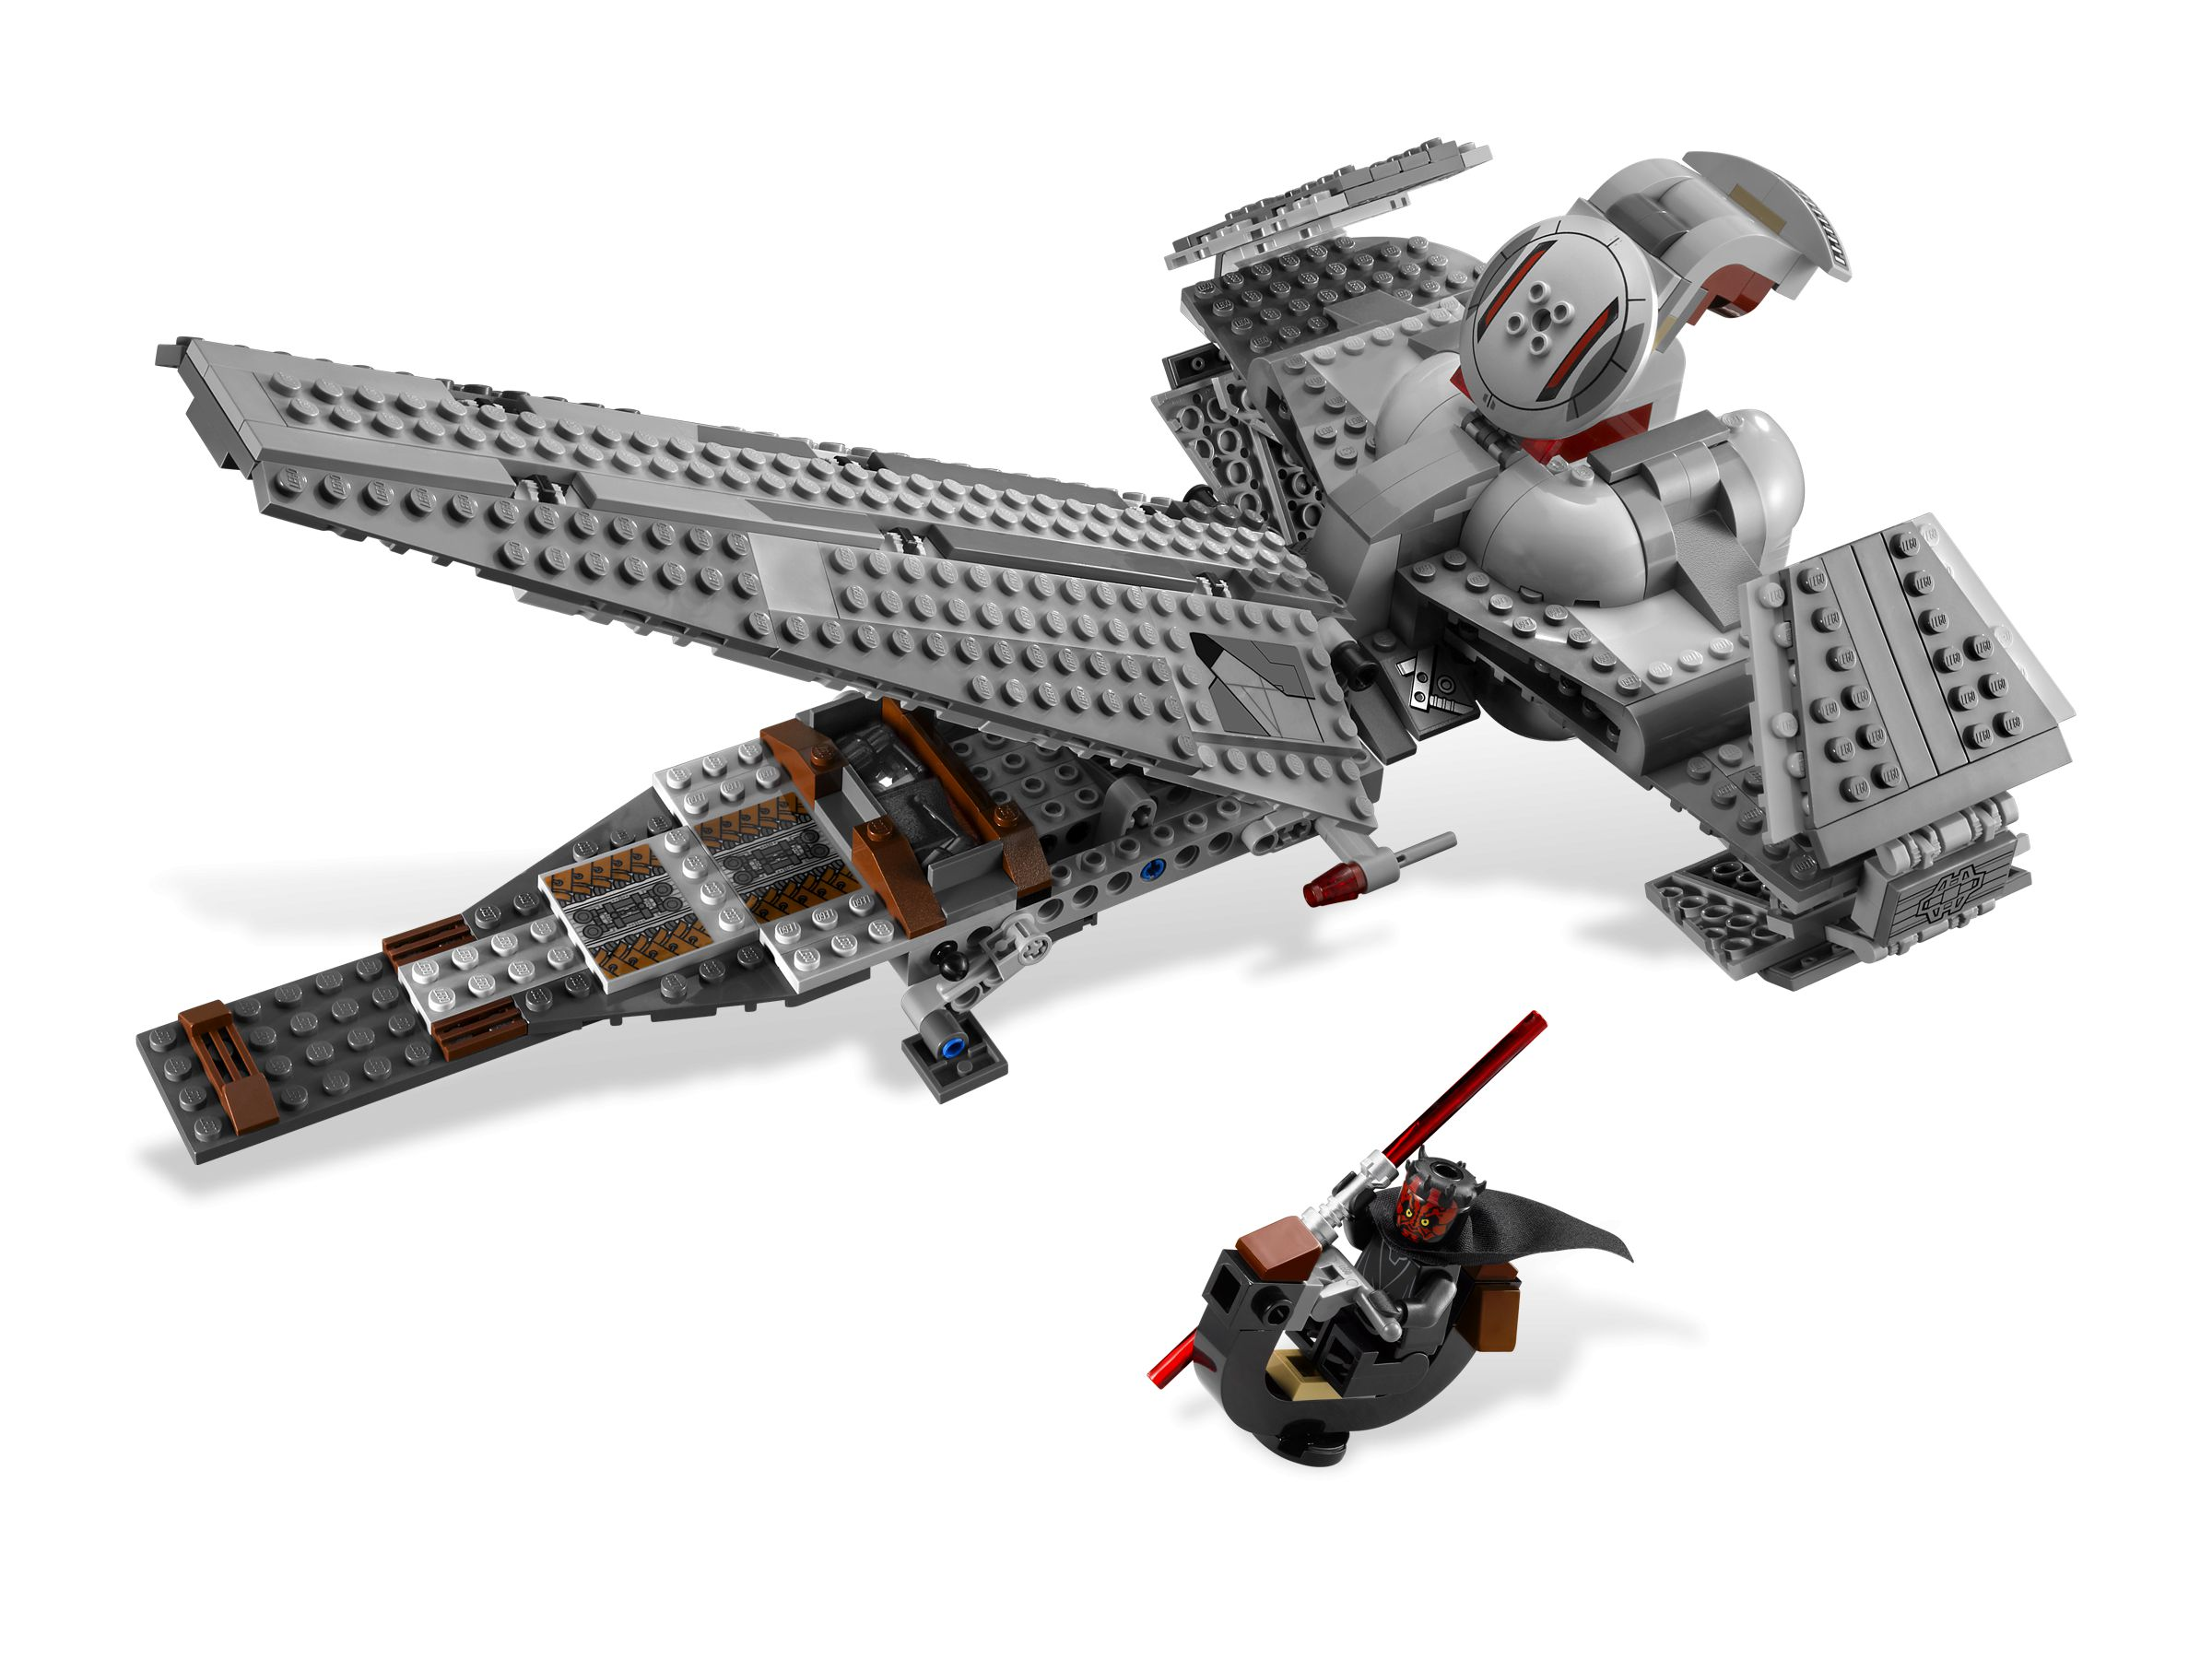 lego 7961 darth maul 39 s sith infiltrator star wars 2011 brickmerge. Black Bedroom Furniture Sets. Home Design Ideas